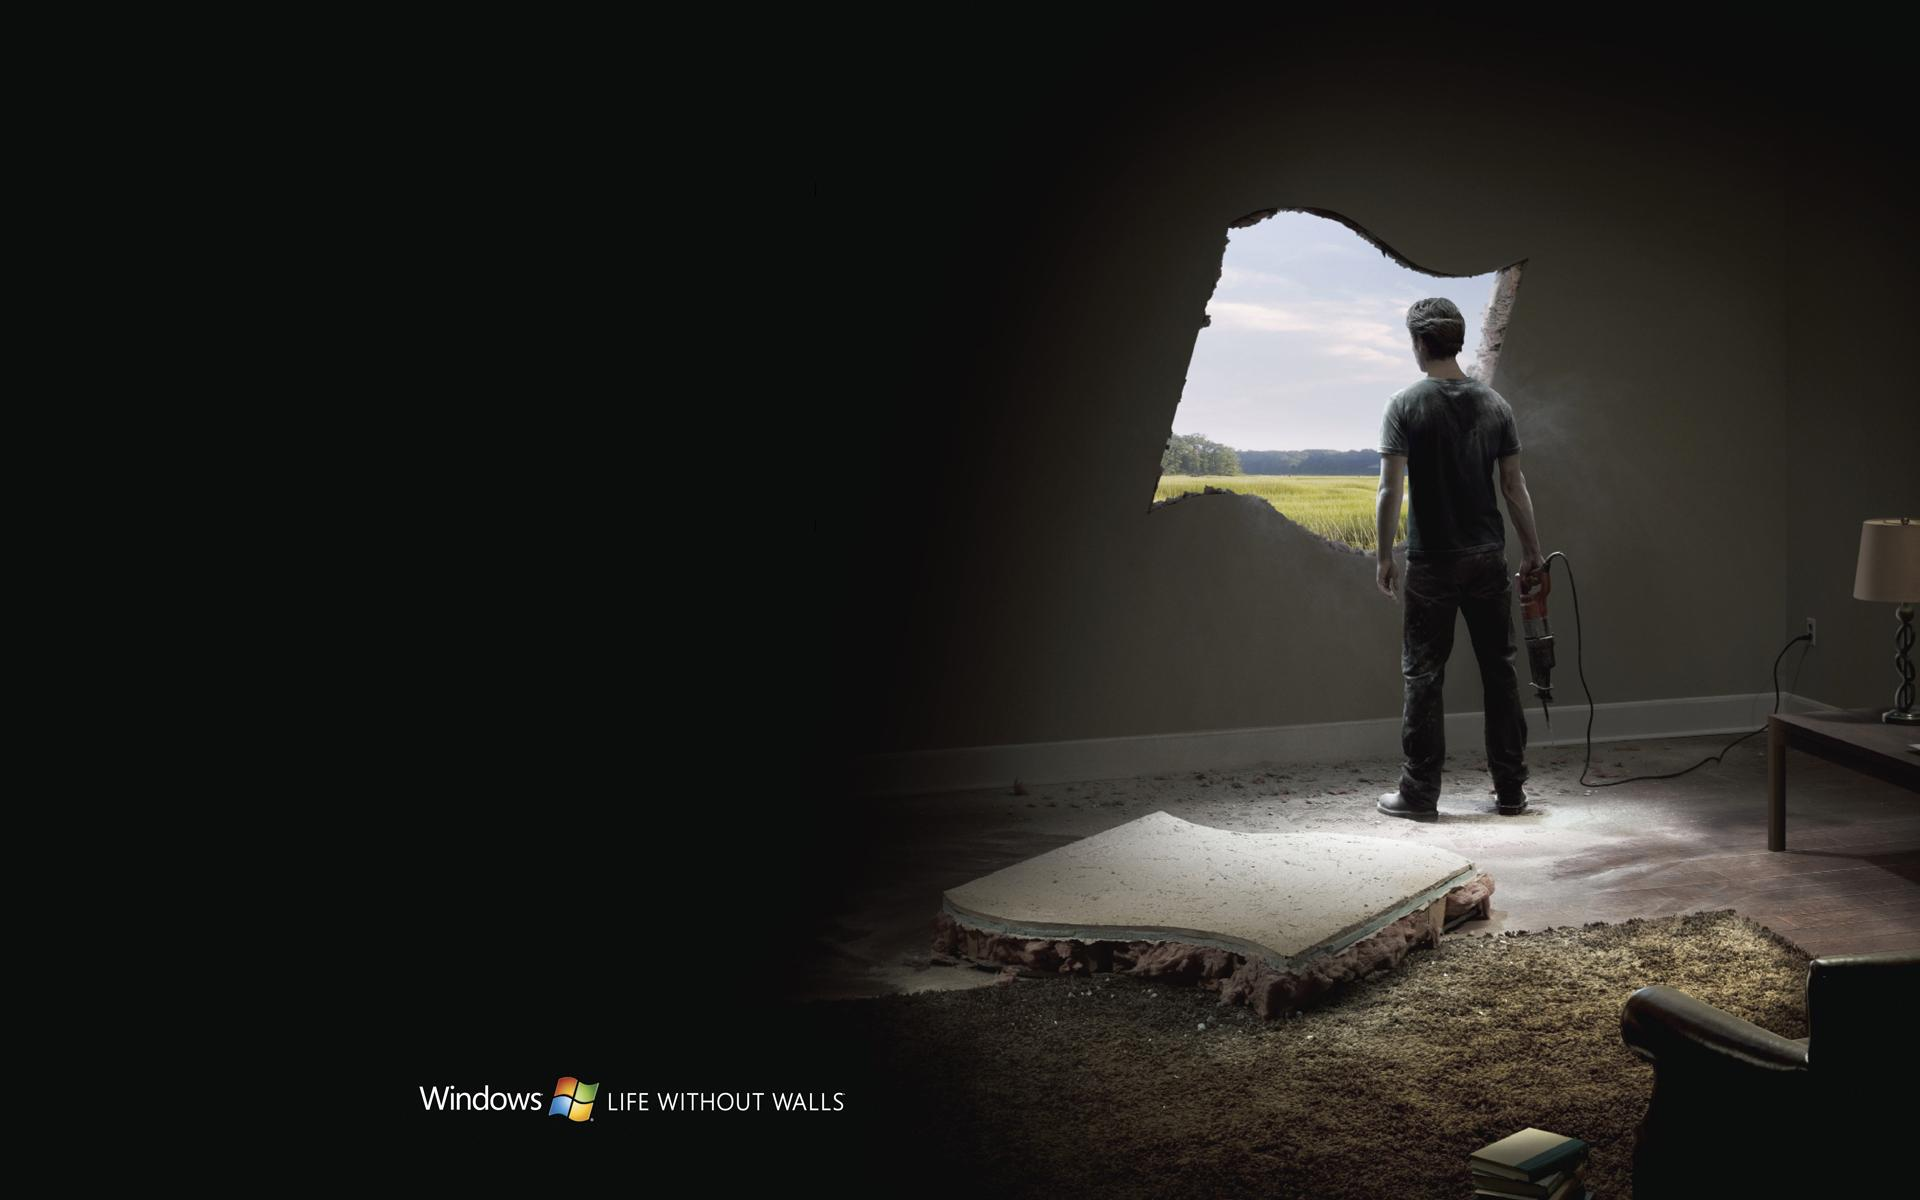 walls wallpapers for your pc aspx for some cool wallpapers to cover 1920x1200